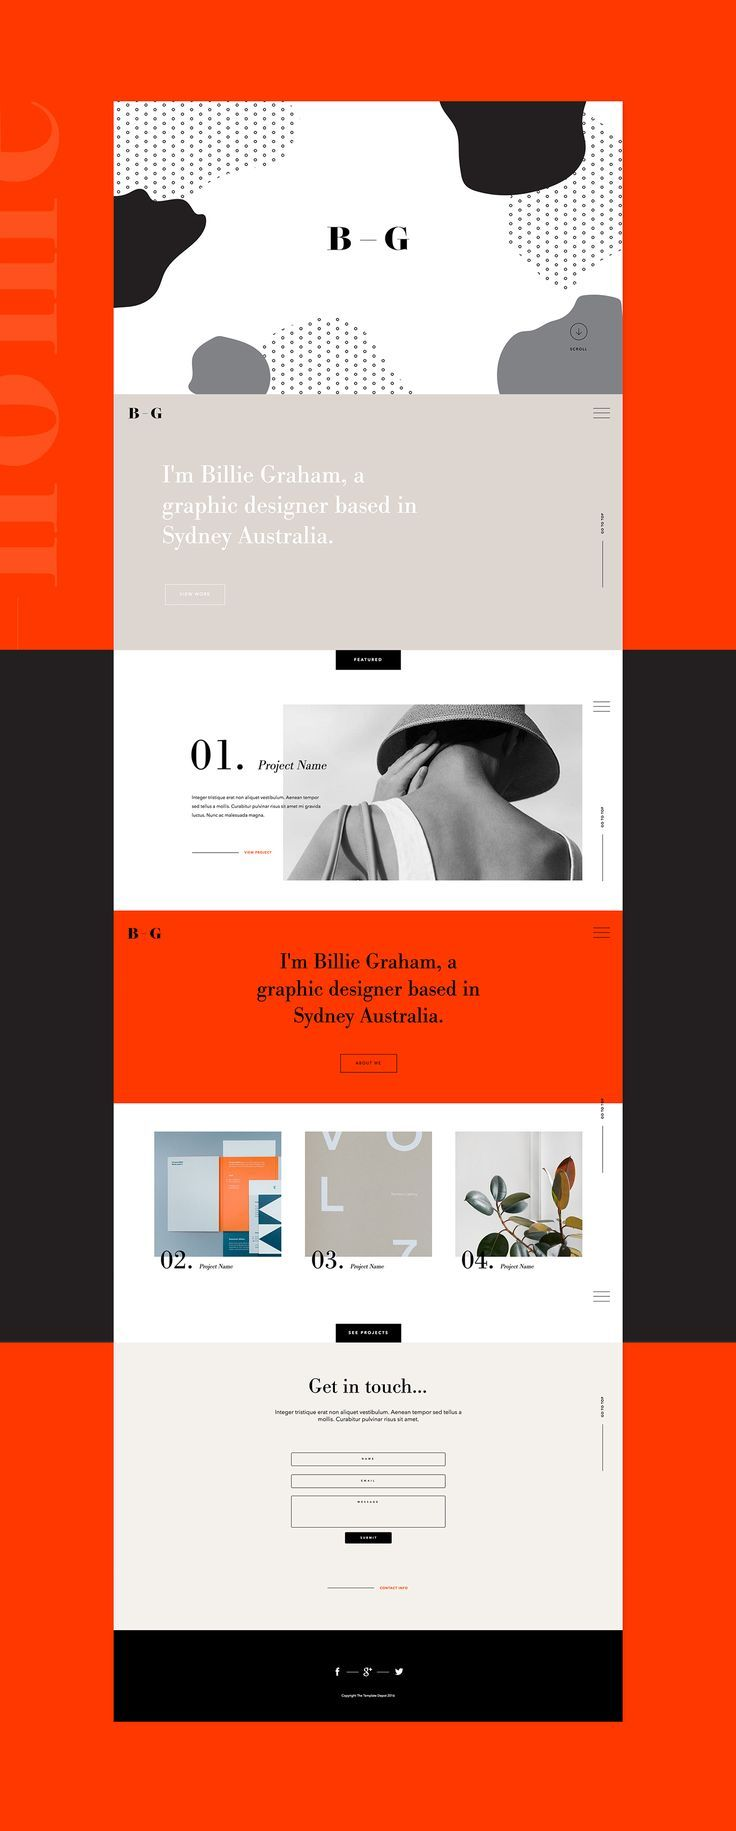 1957 best images about graphic web design on pinterest